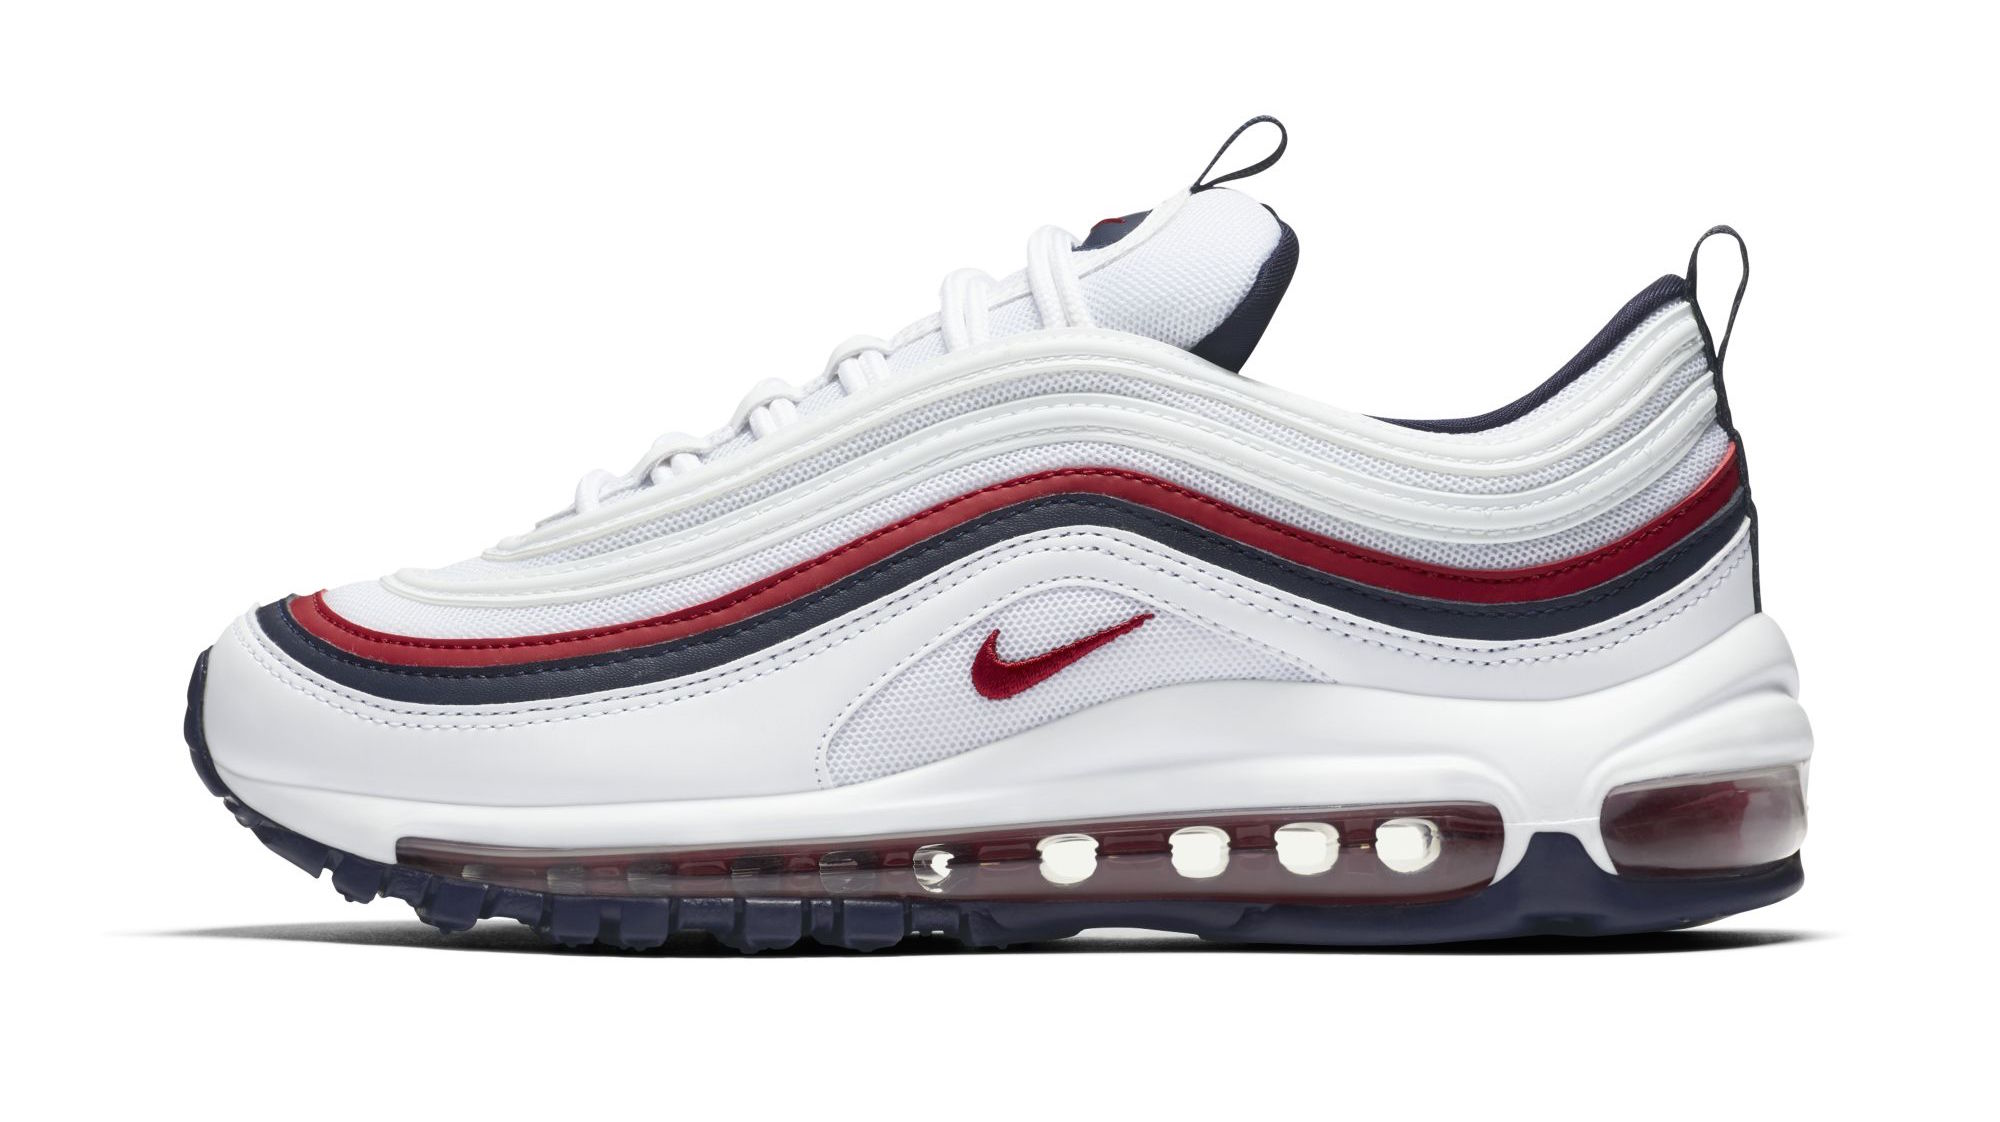 This Nike WMNS Air Max 97 Is Ready For Independence Day